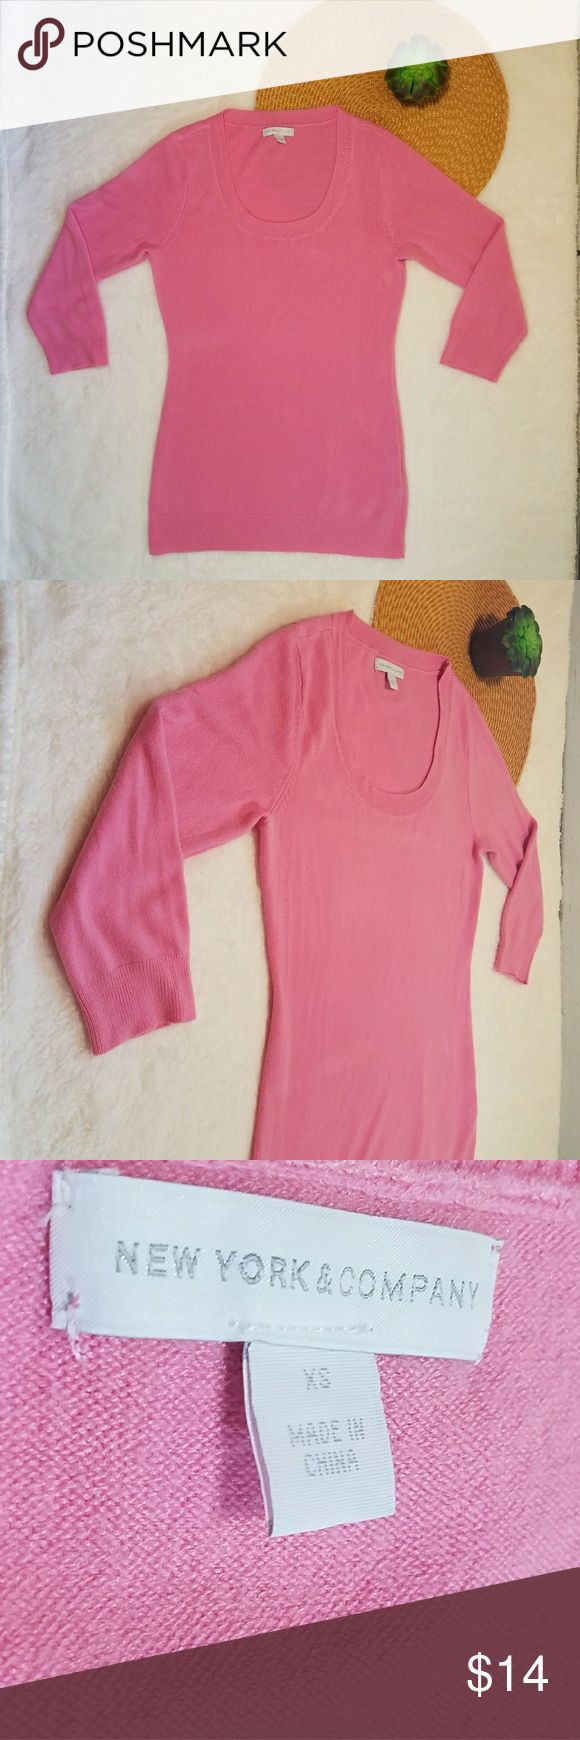 New York and Company Pink Long Sleeve Top Sz XS New York and Company Pink Long Sleeve Top Sz XS New York & Company Tops Tees - Long Sleeve